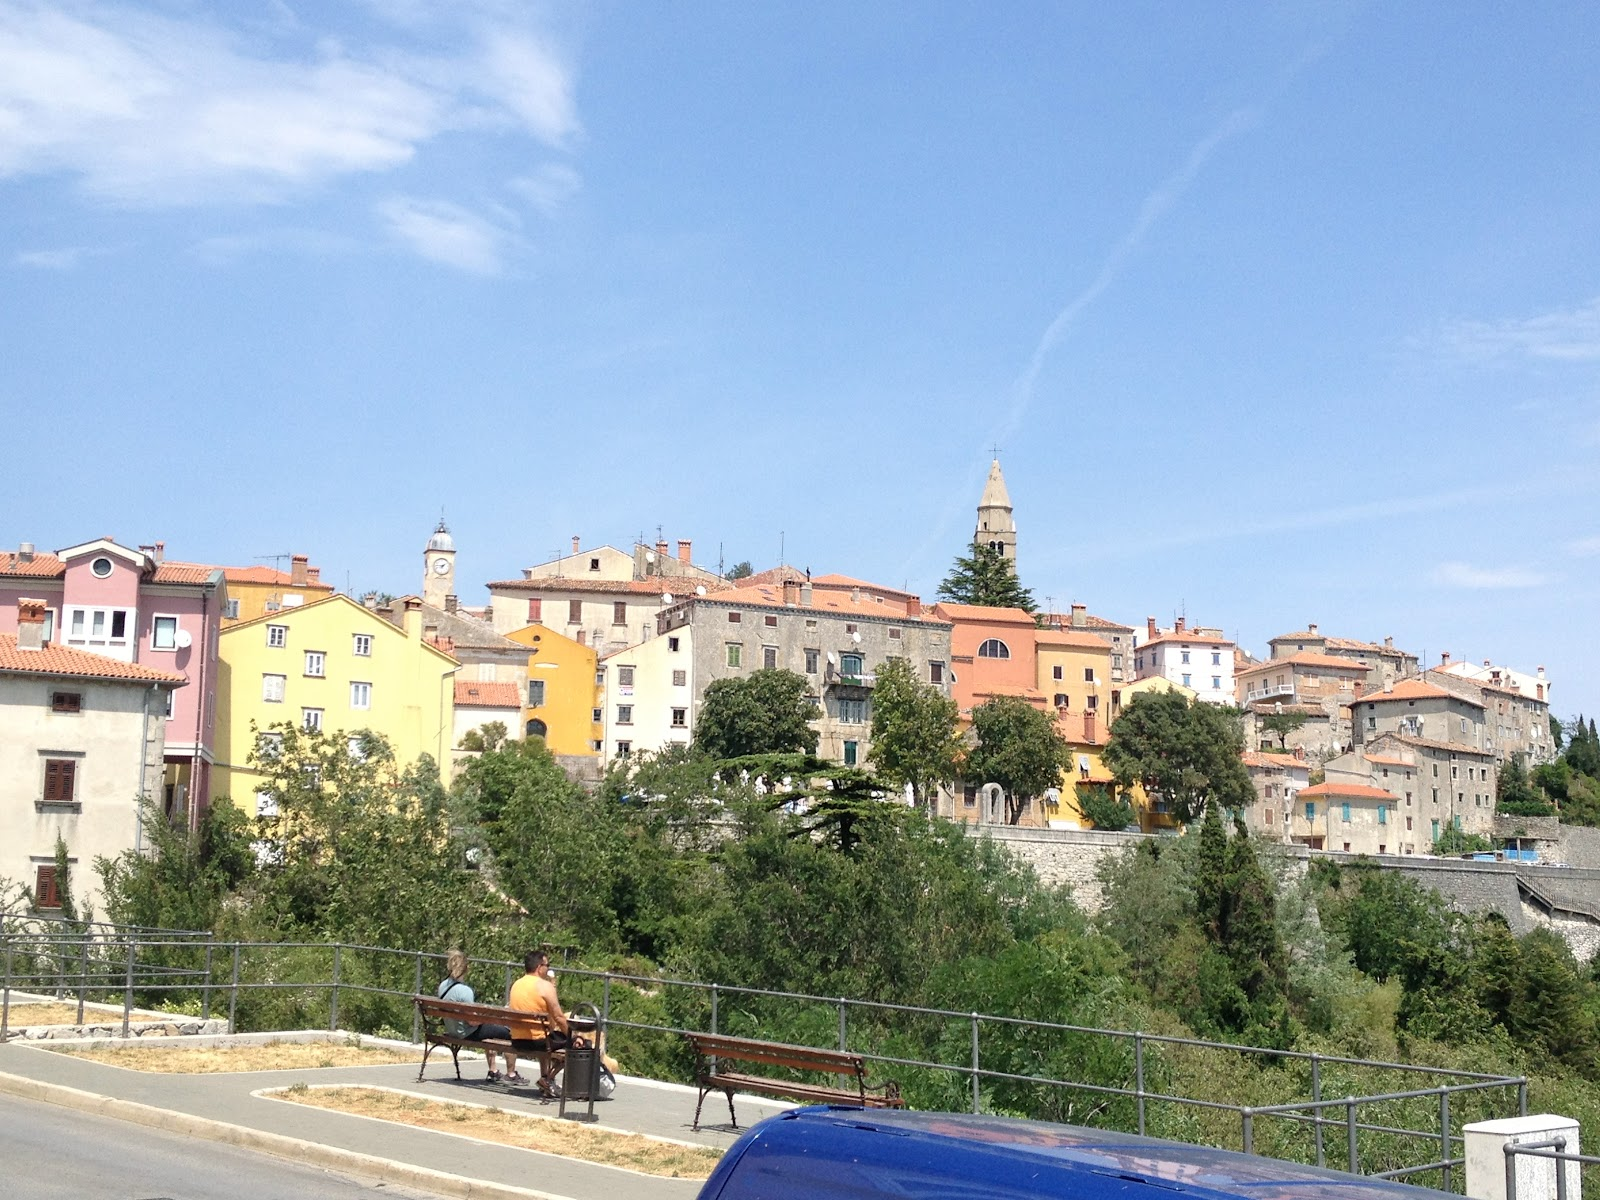 OUTFIT - Road trip to Labin and Rabac - FASHION IN THE AIR